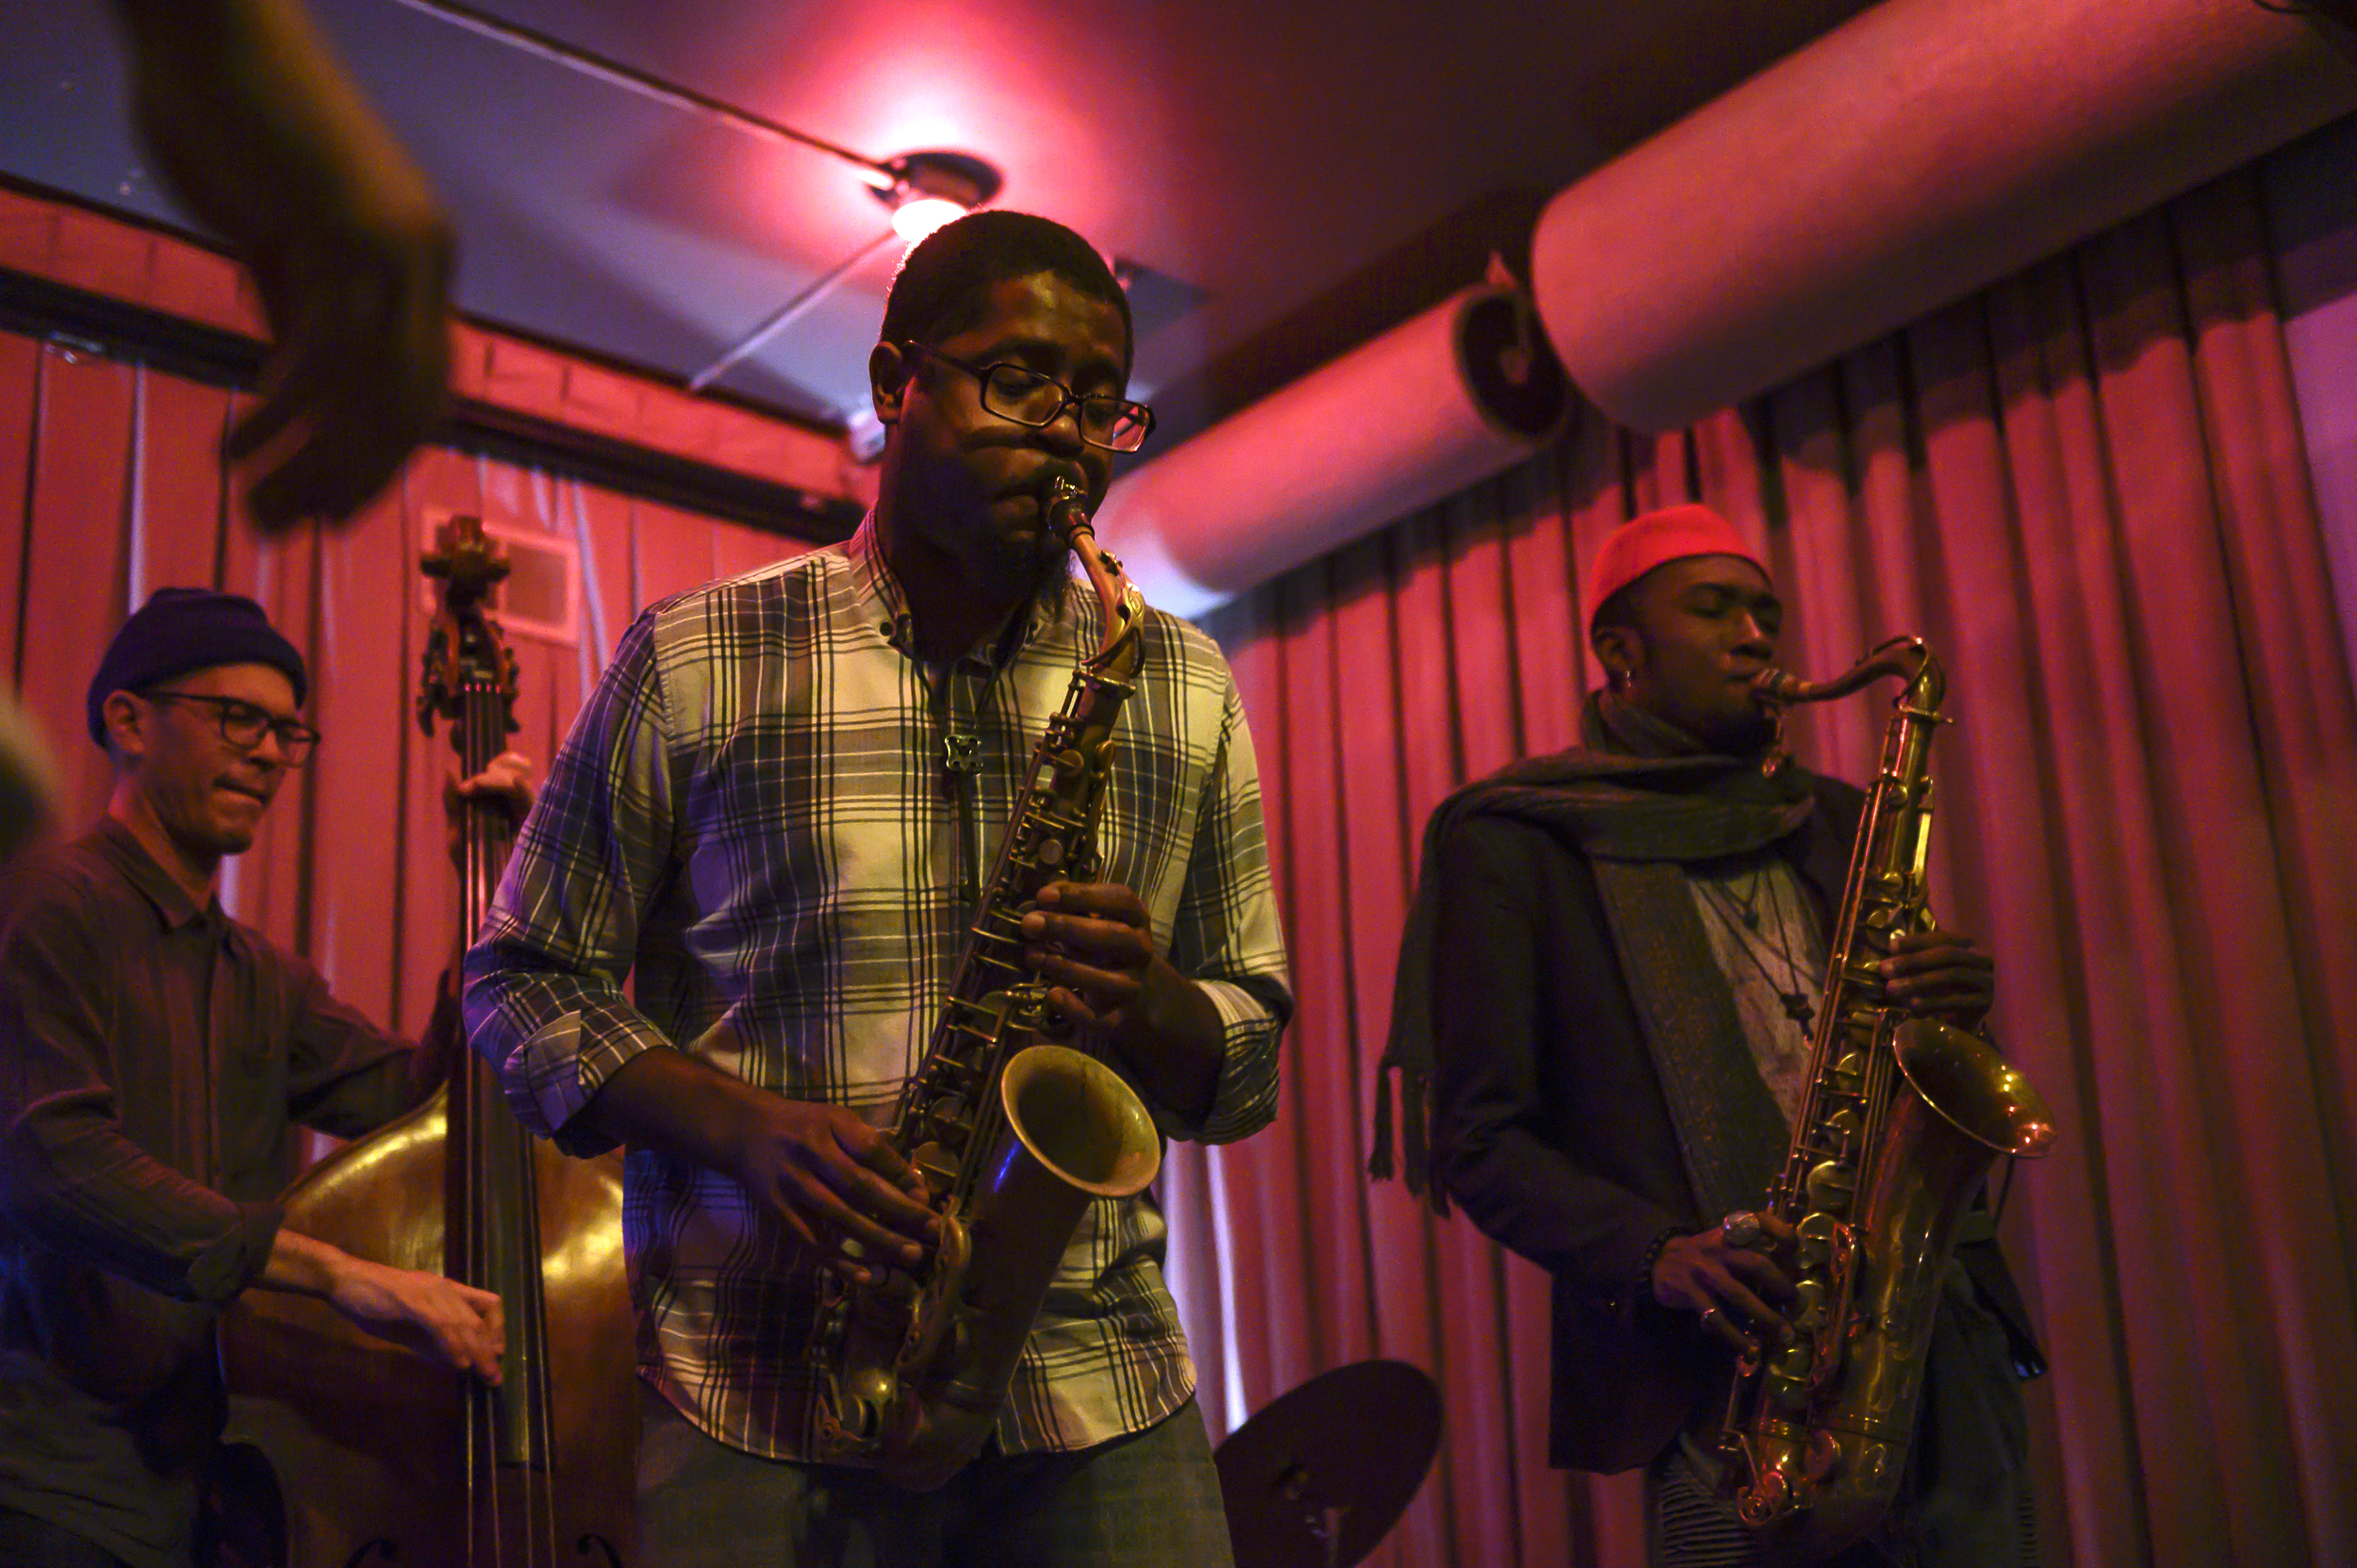 A new grant program aims to keep Chicago musicians working